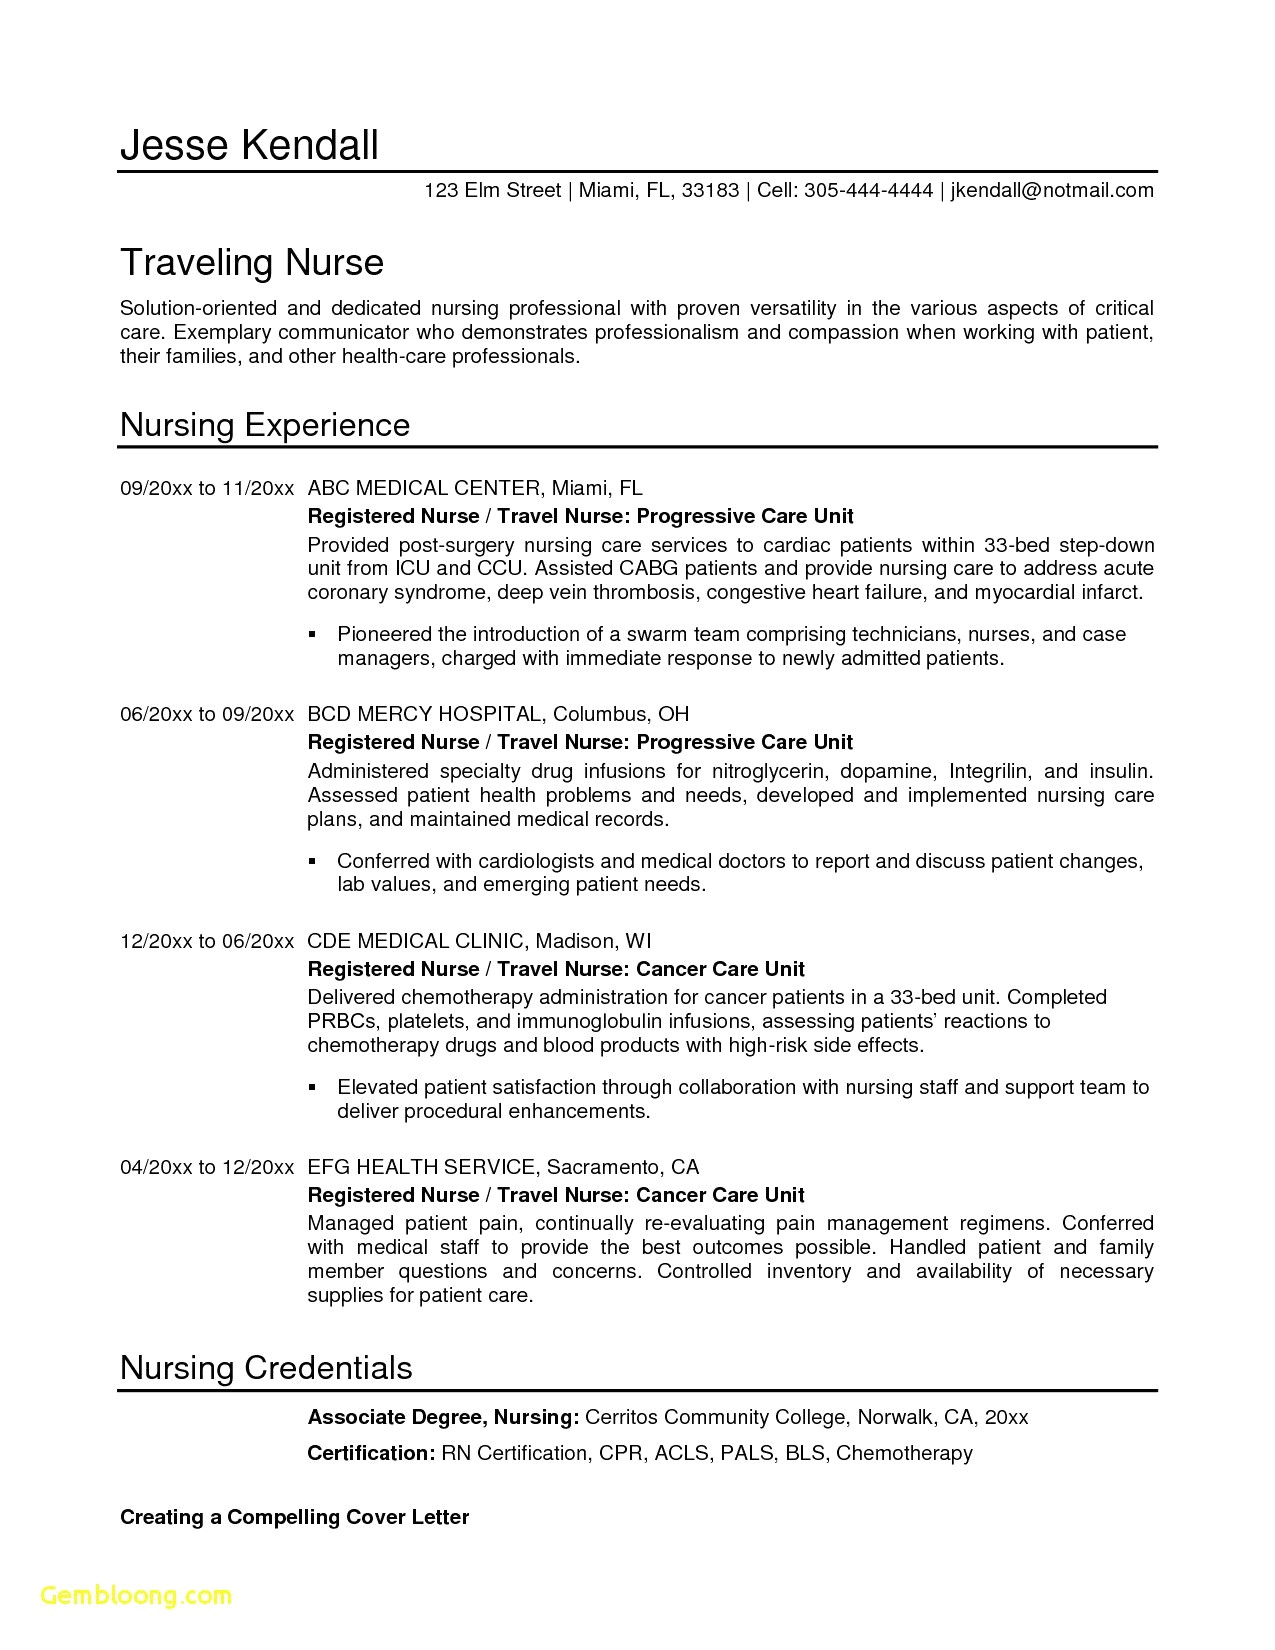 Resume Template for Writers - 60 Design Resume Writing Certification